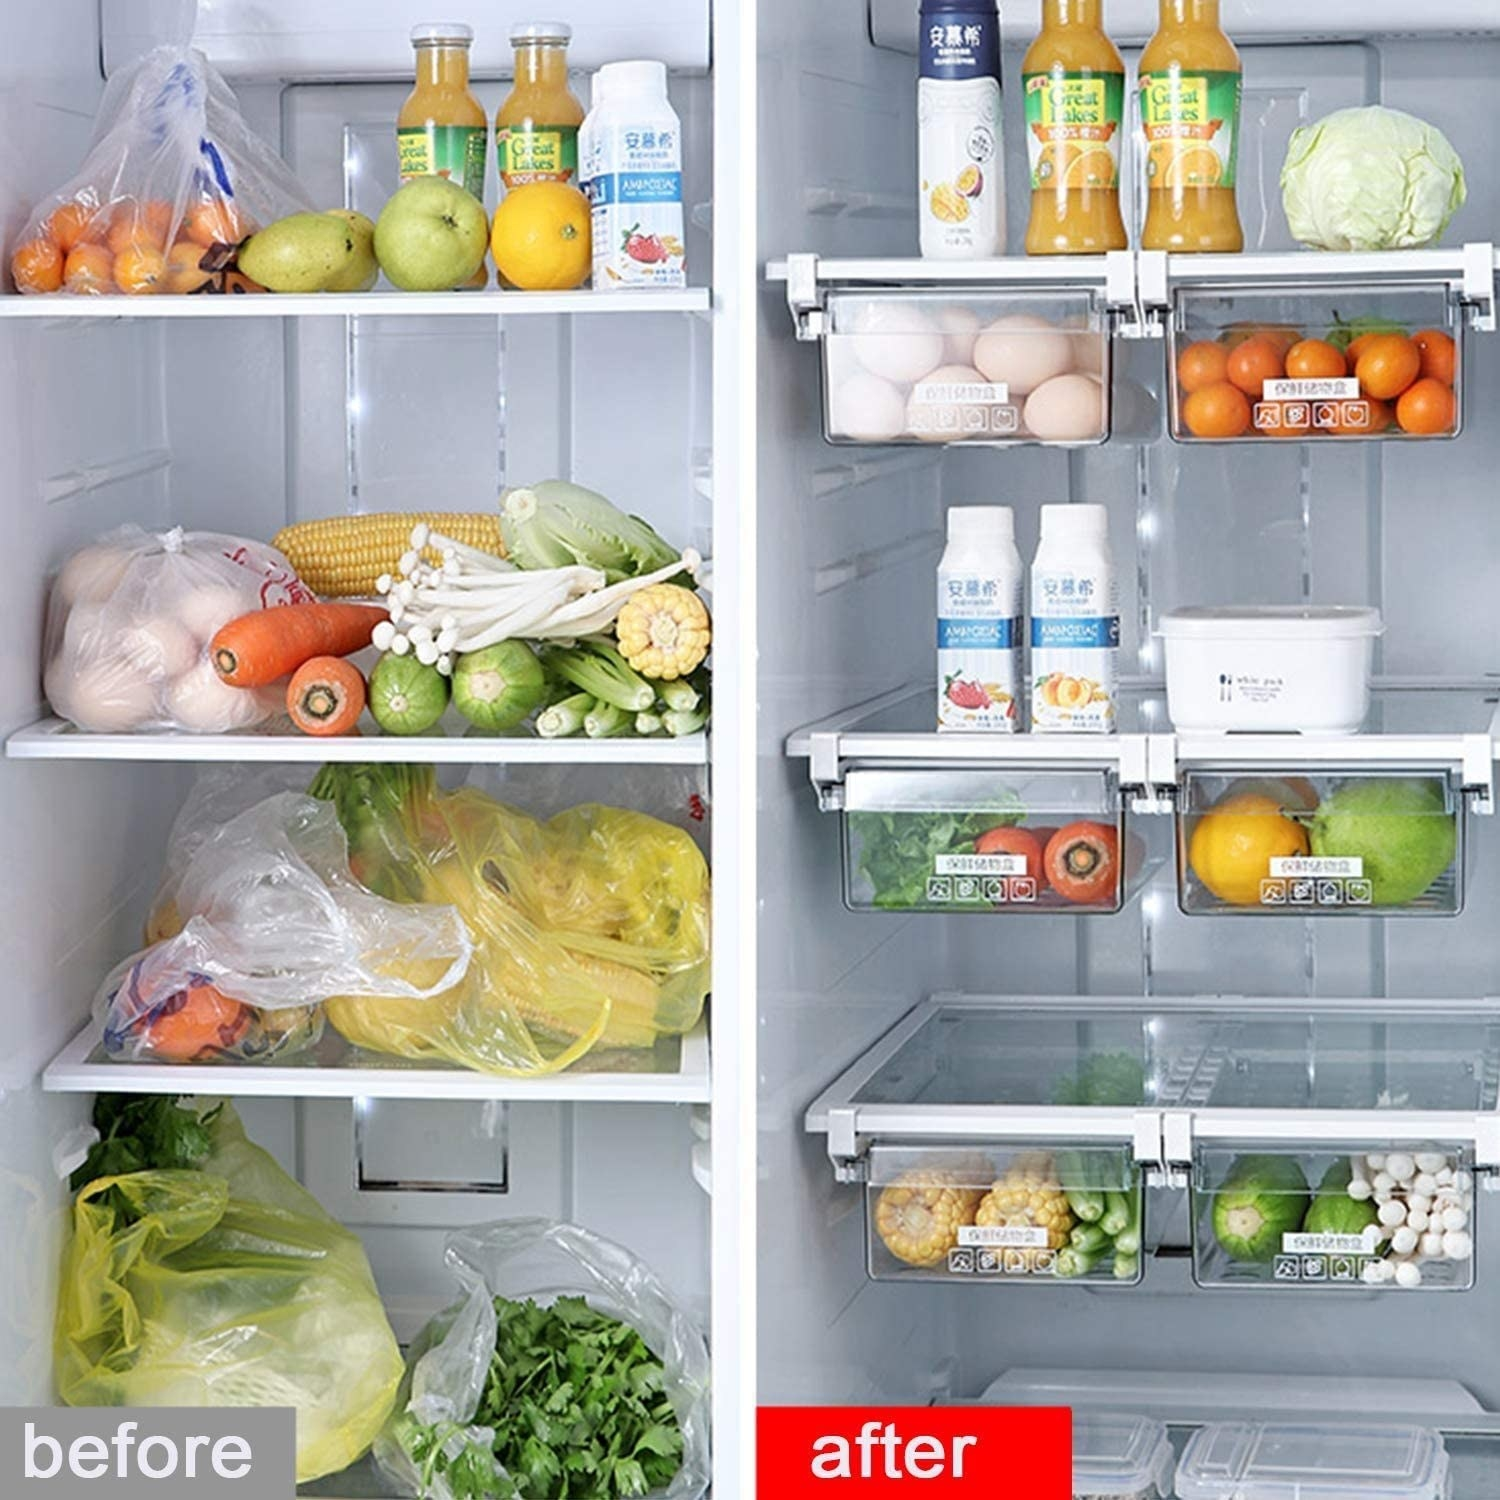 a fridge before and after using the bins